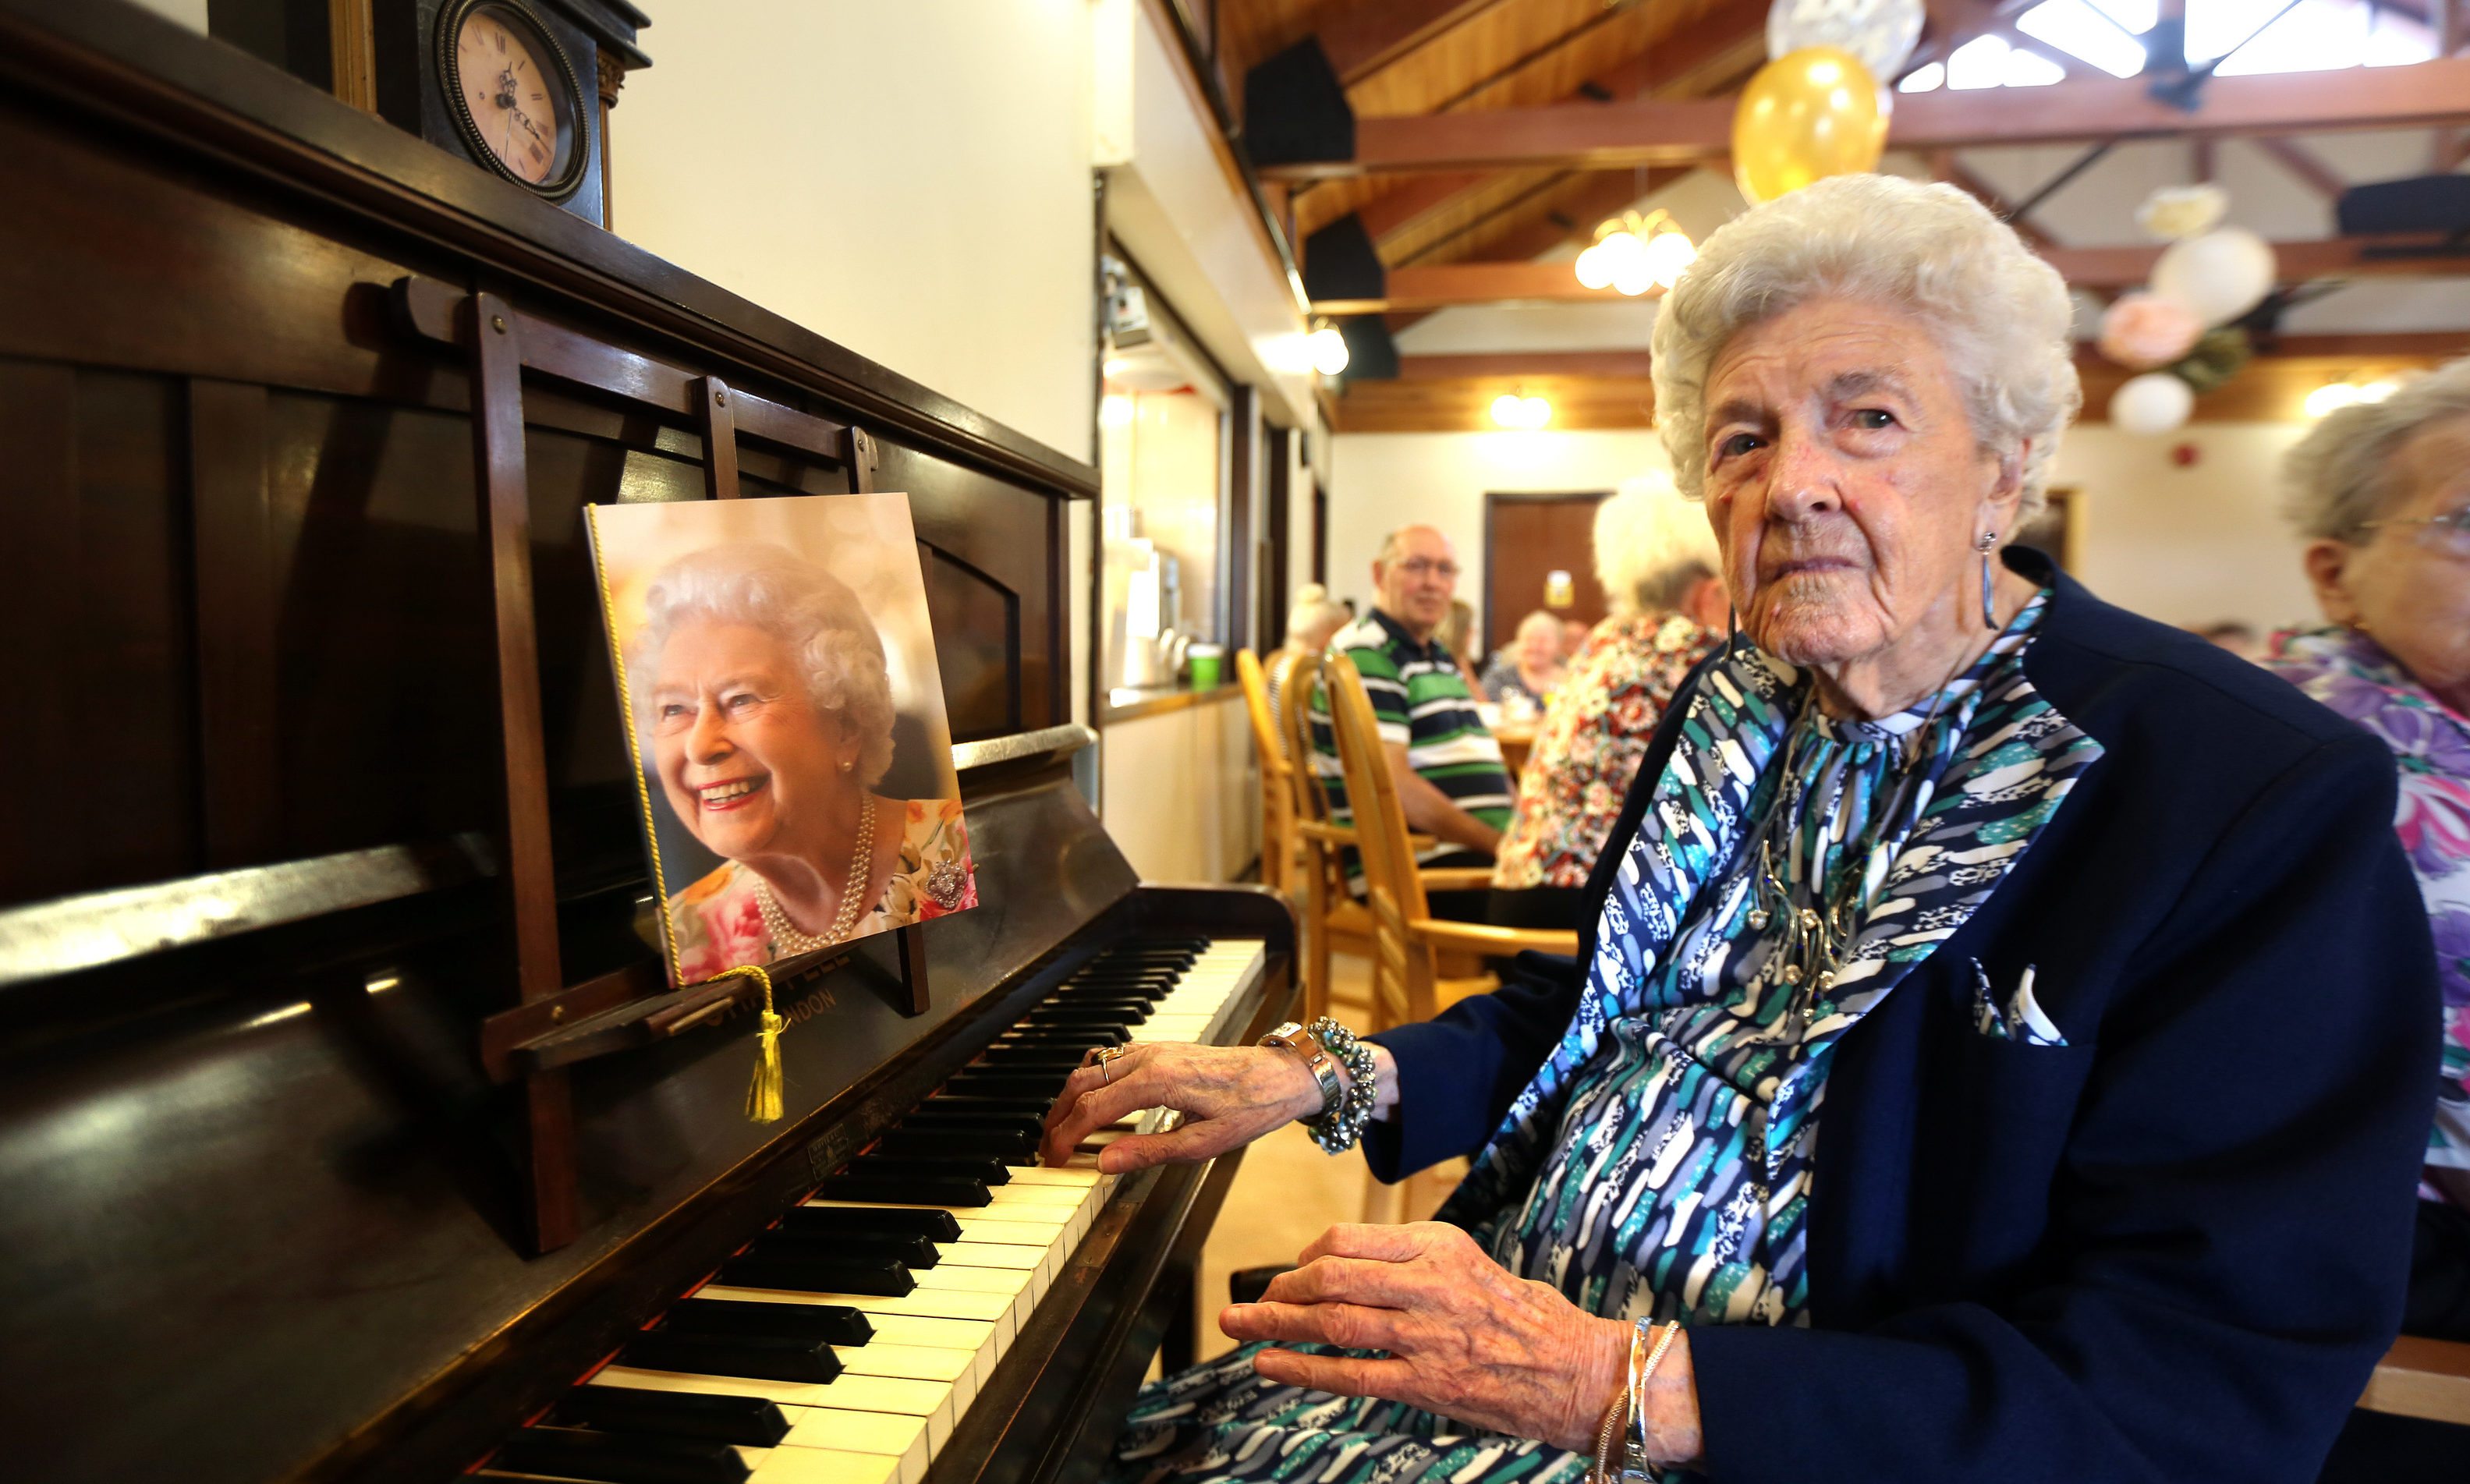 Agnes (Nessie) Manzie celebrating her 100th Birthday at Seaton Grove in 2017.